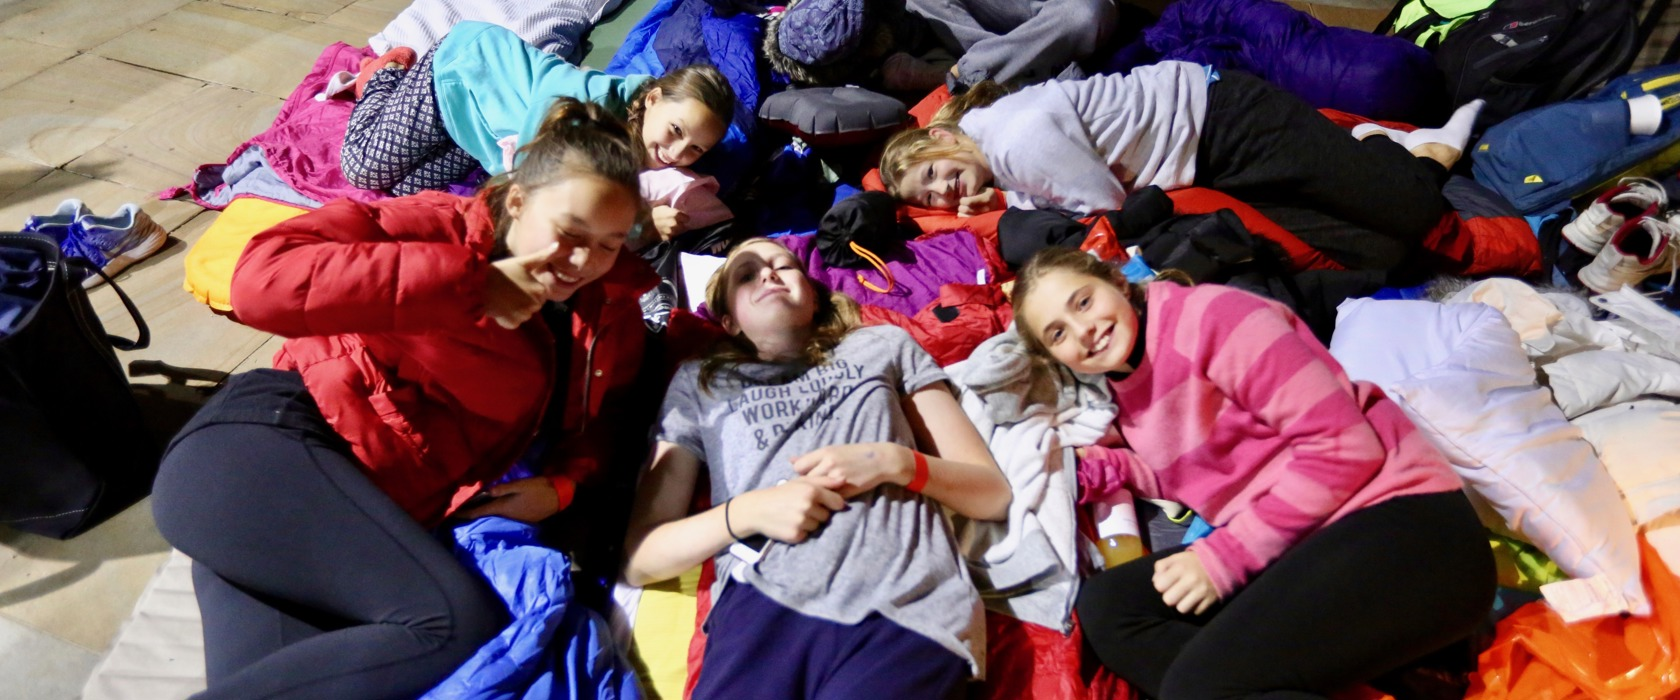 Sleep Out to raise awareness and funds to end homelessness